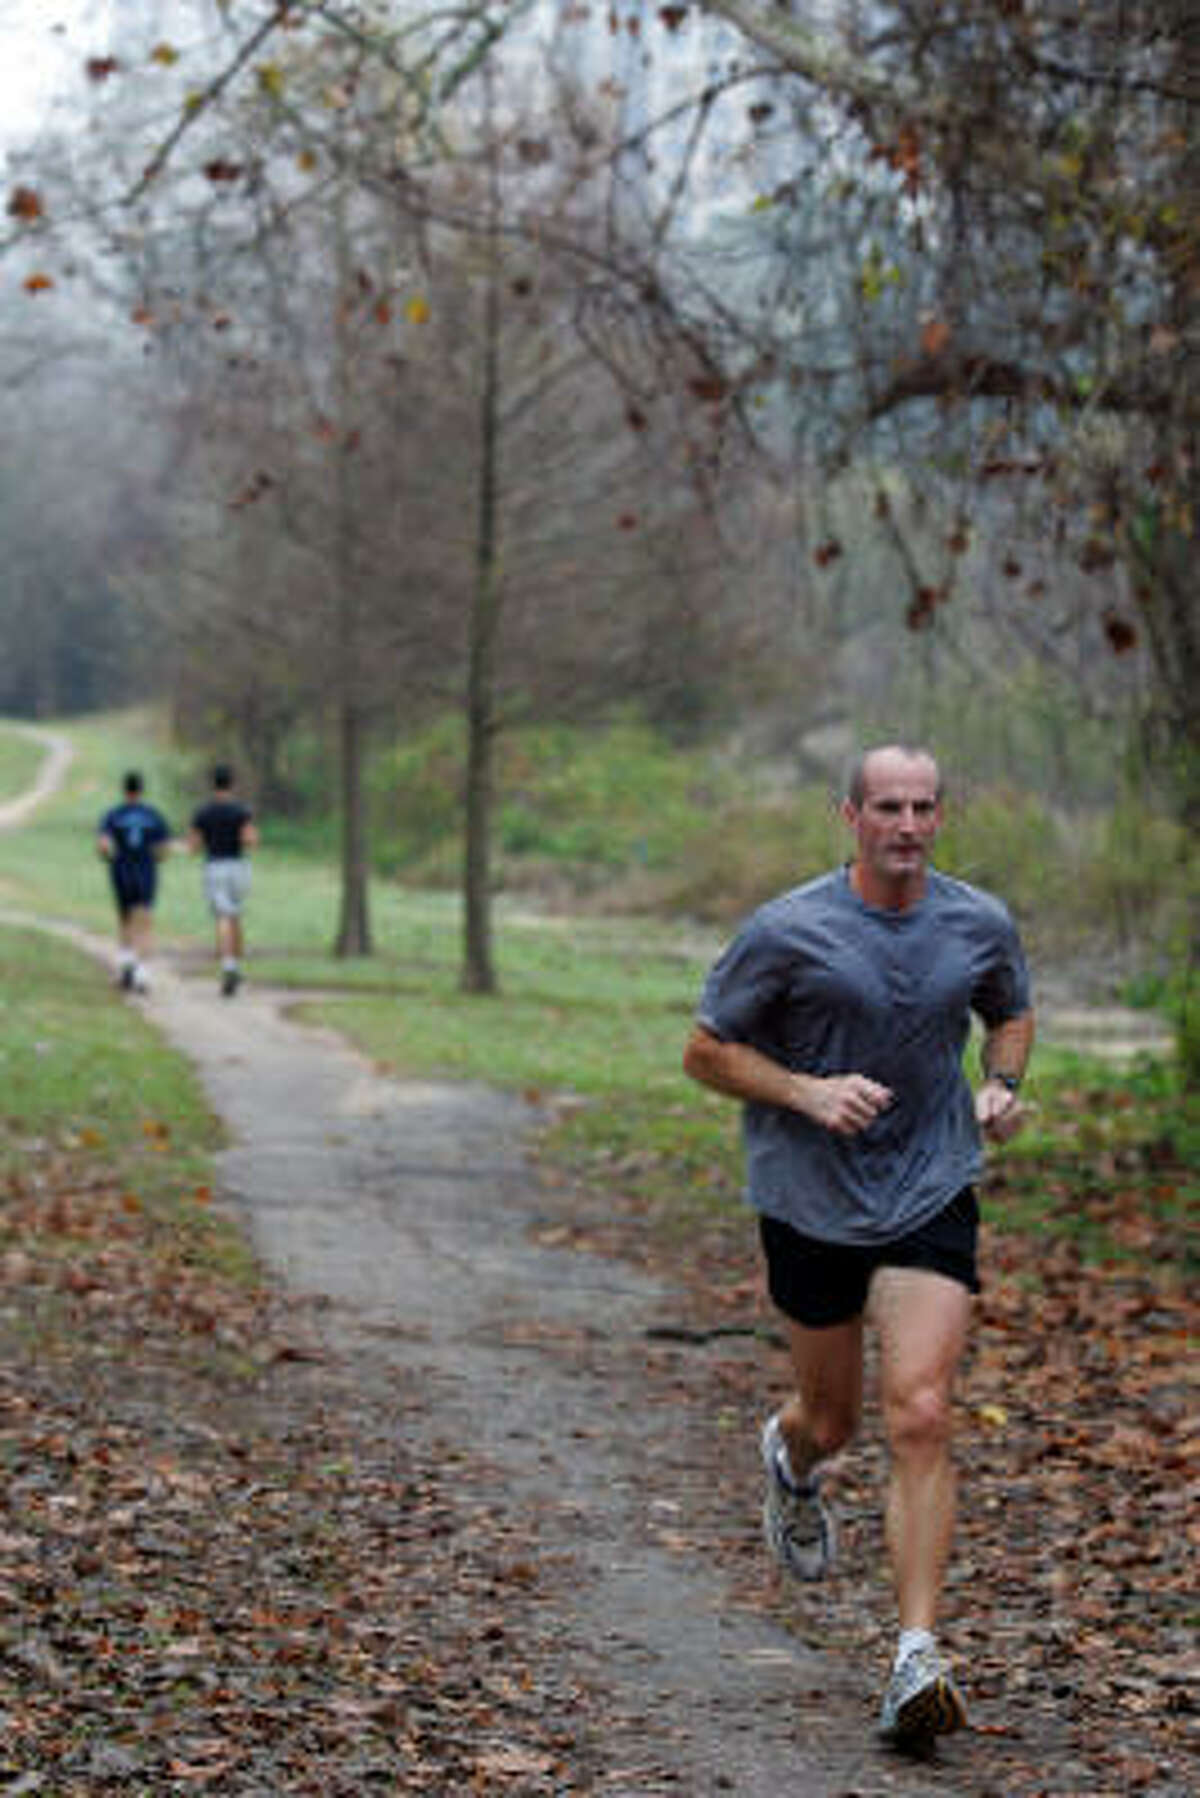 John Crockette, 43, of Houston gets in a training run for the Chevron Houston Marathon on the Sandy Reed Memorial Trail on a recent Saturday morning.